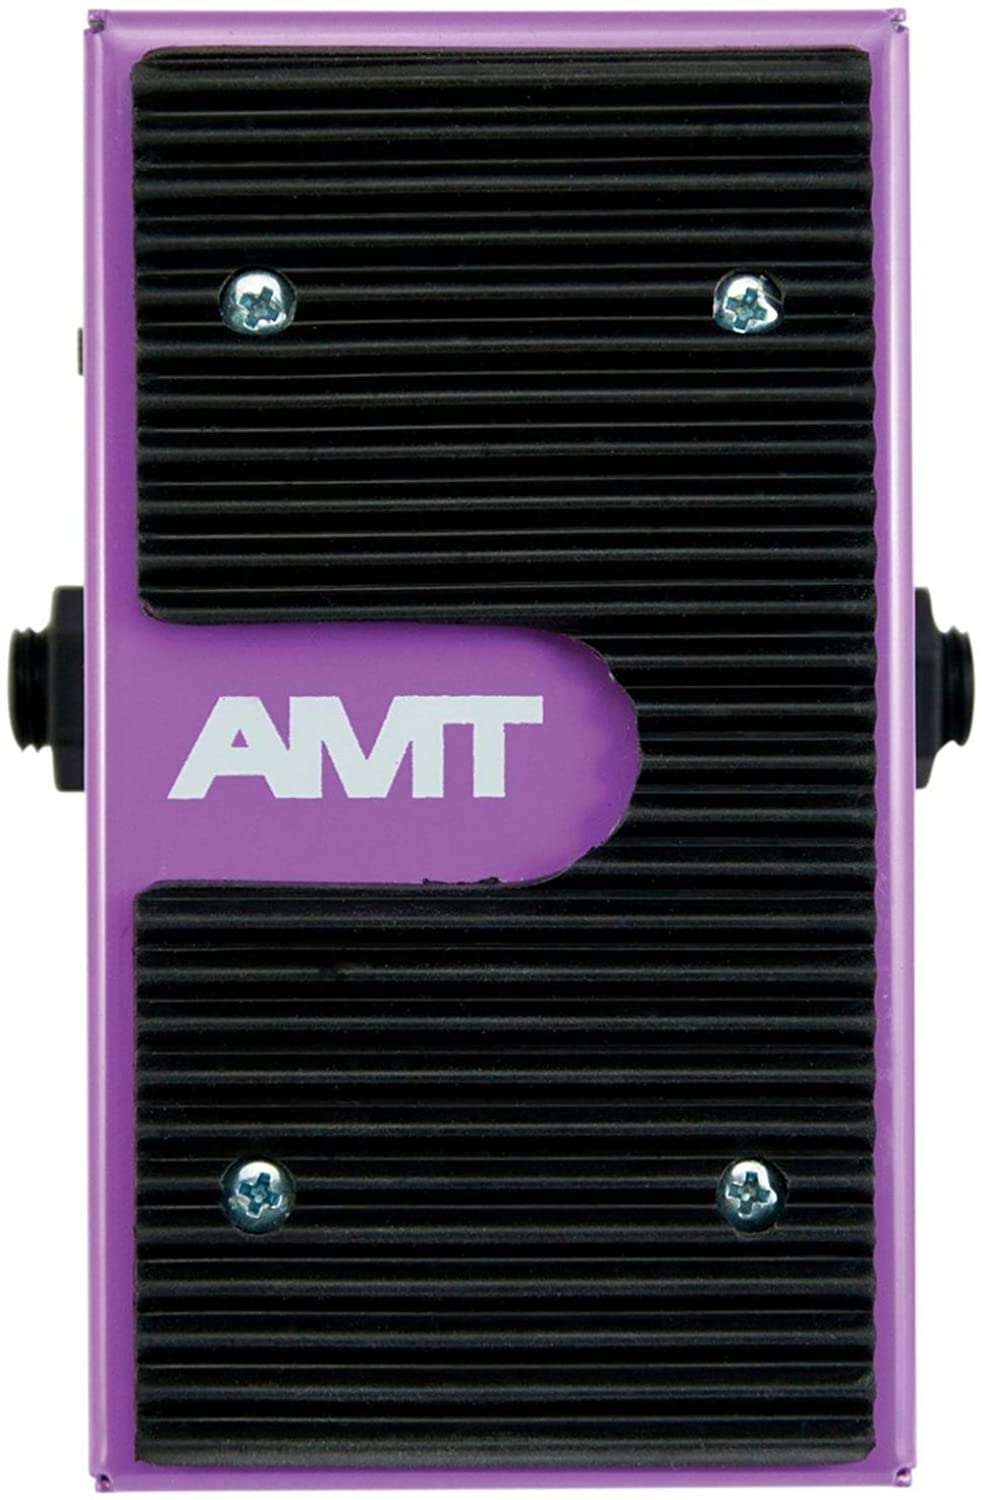 AMT Japanese Girl Wah AMT Electronics WH-1